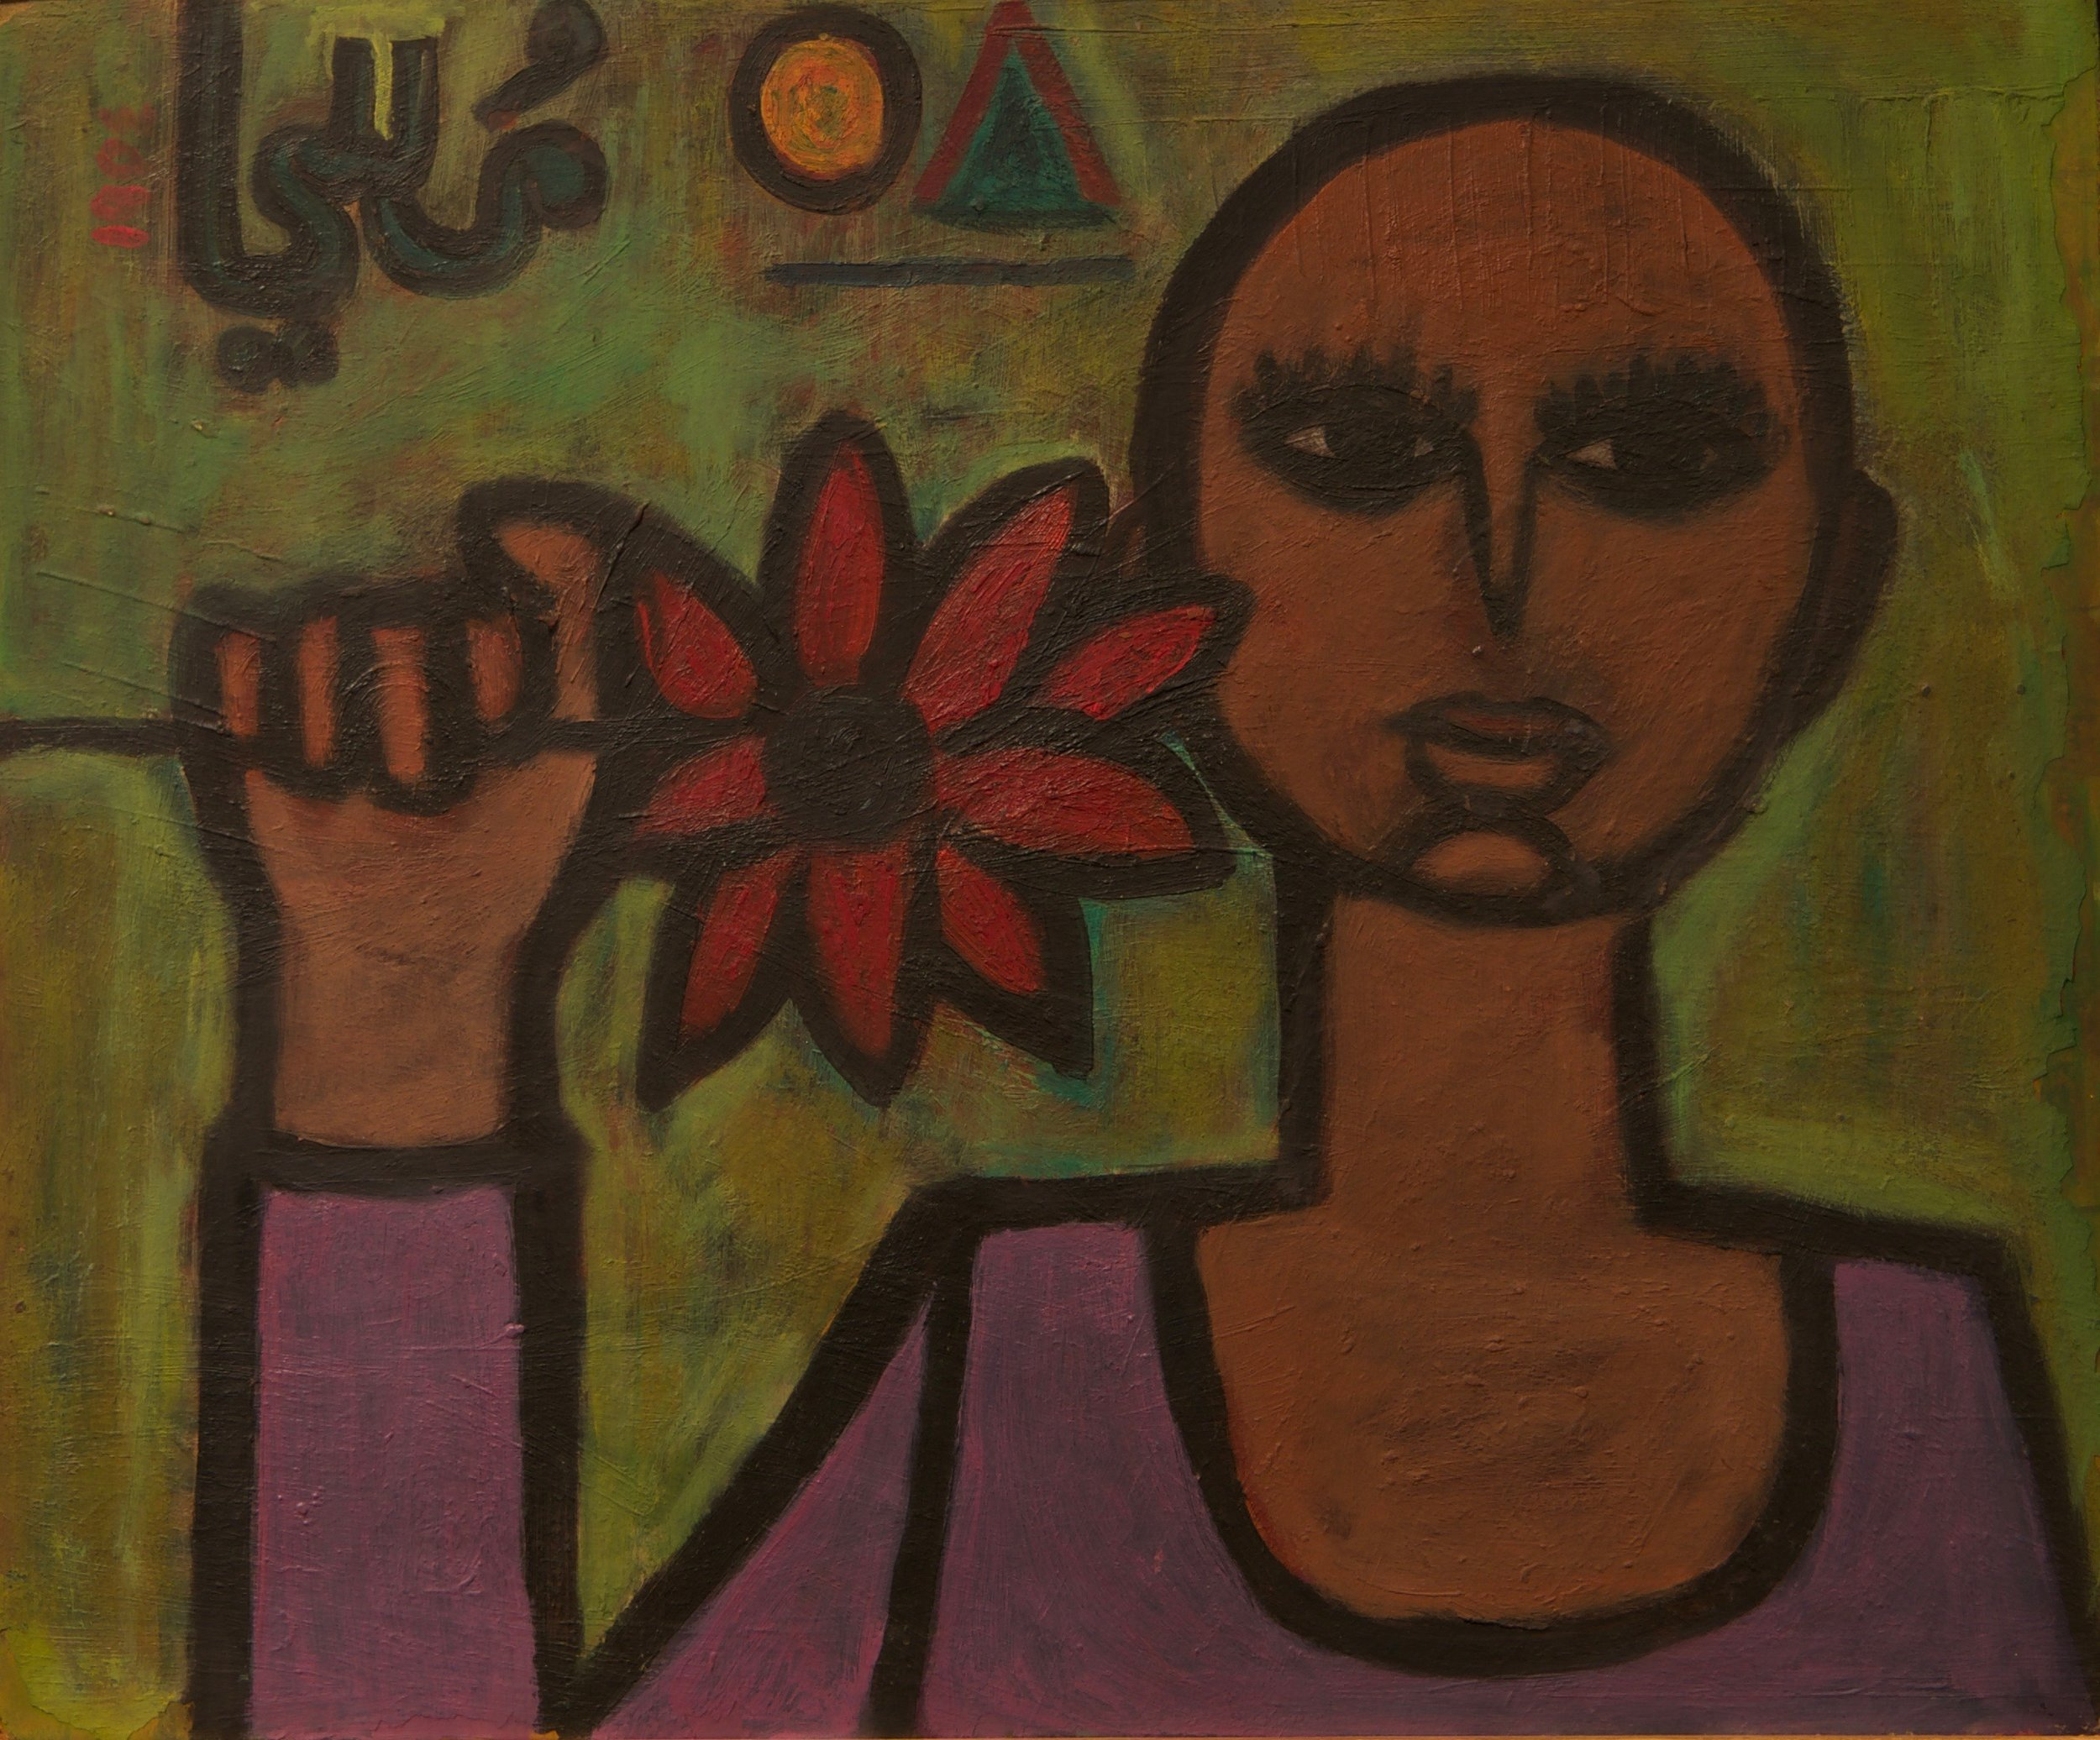 Ahmed-Morsi-Untitled-(Flower-Morsi-Arabic)-Alexandria-1954.jpg